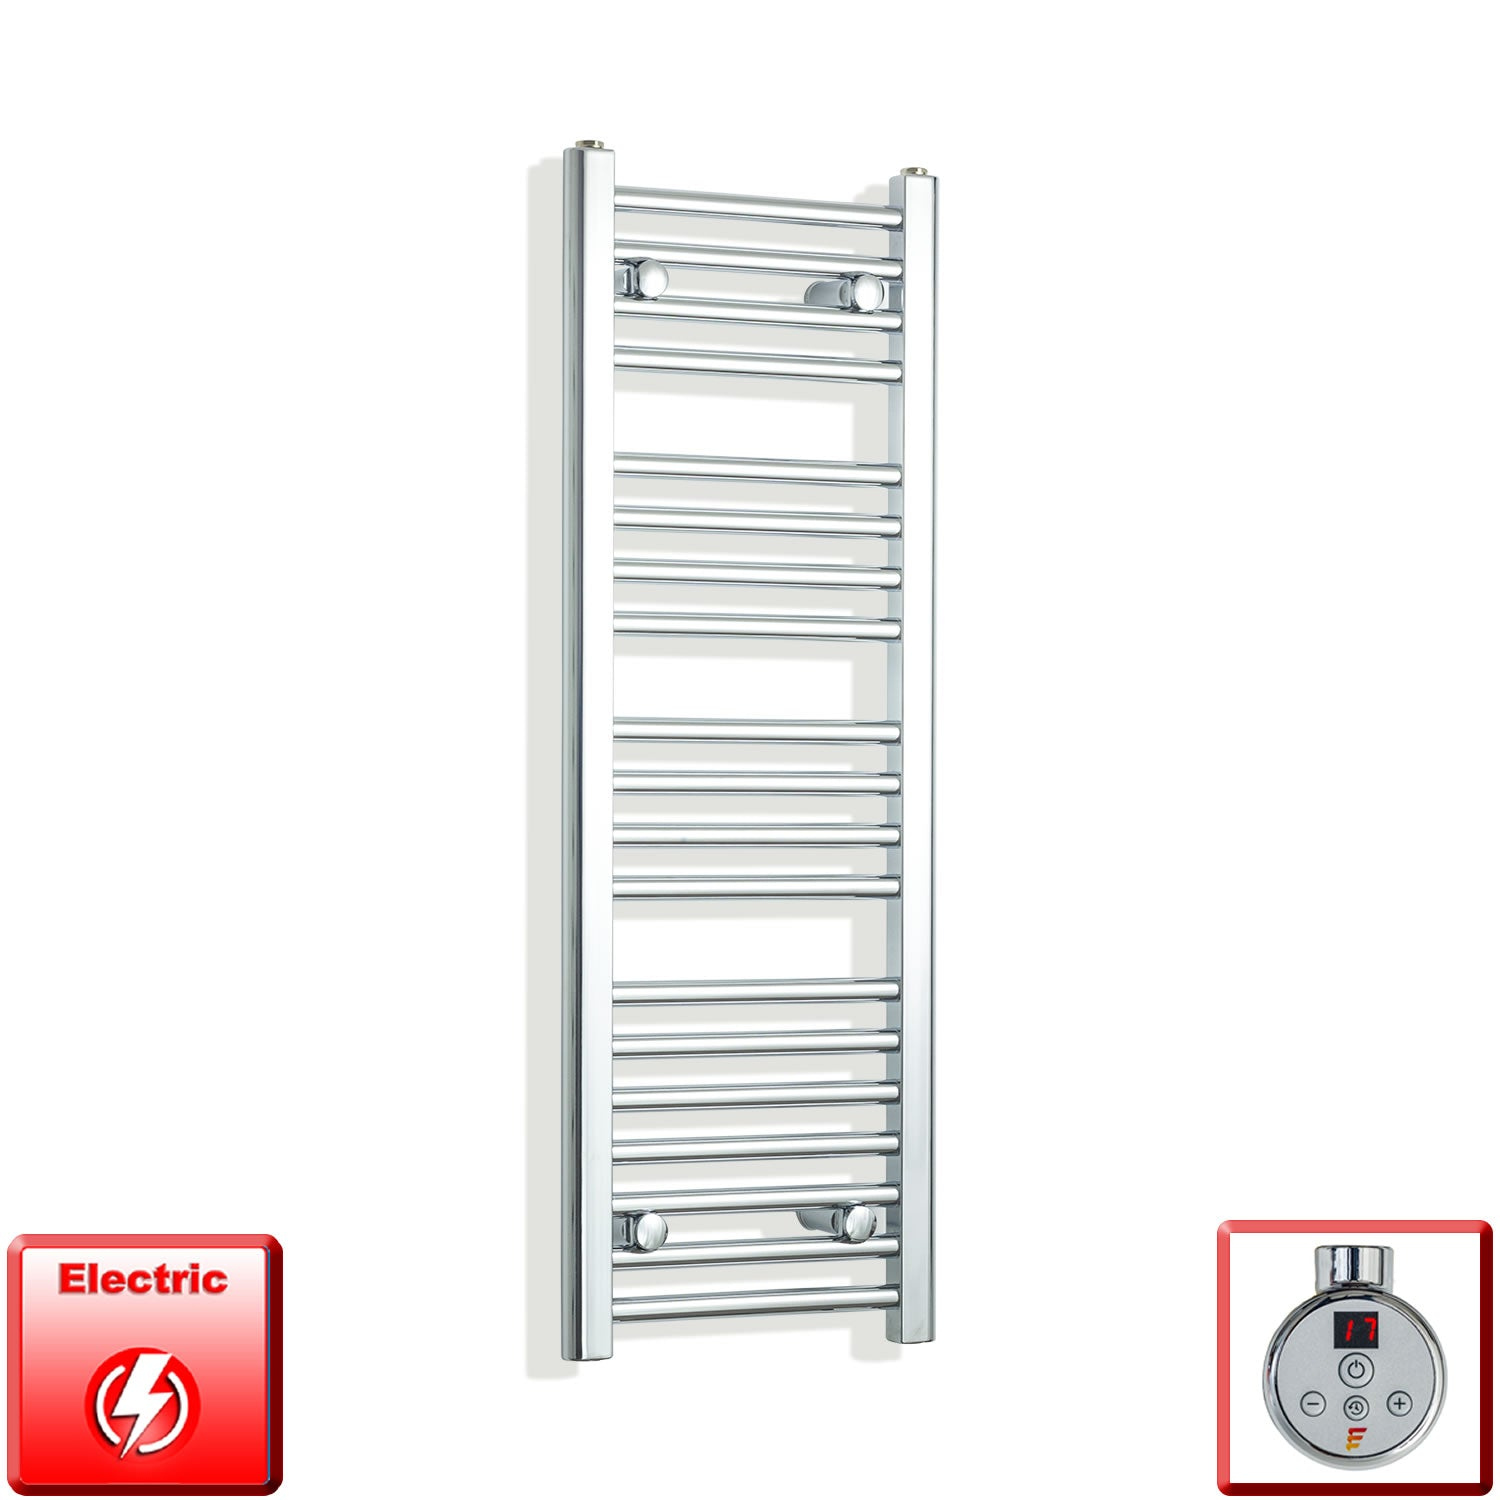 350mm Wide 1000mm High Pre-Filled Chrome Electric Towel Rail Radiator With Thermostatic DIGI Element